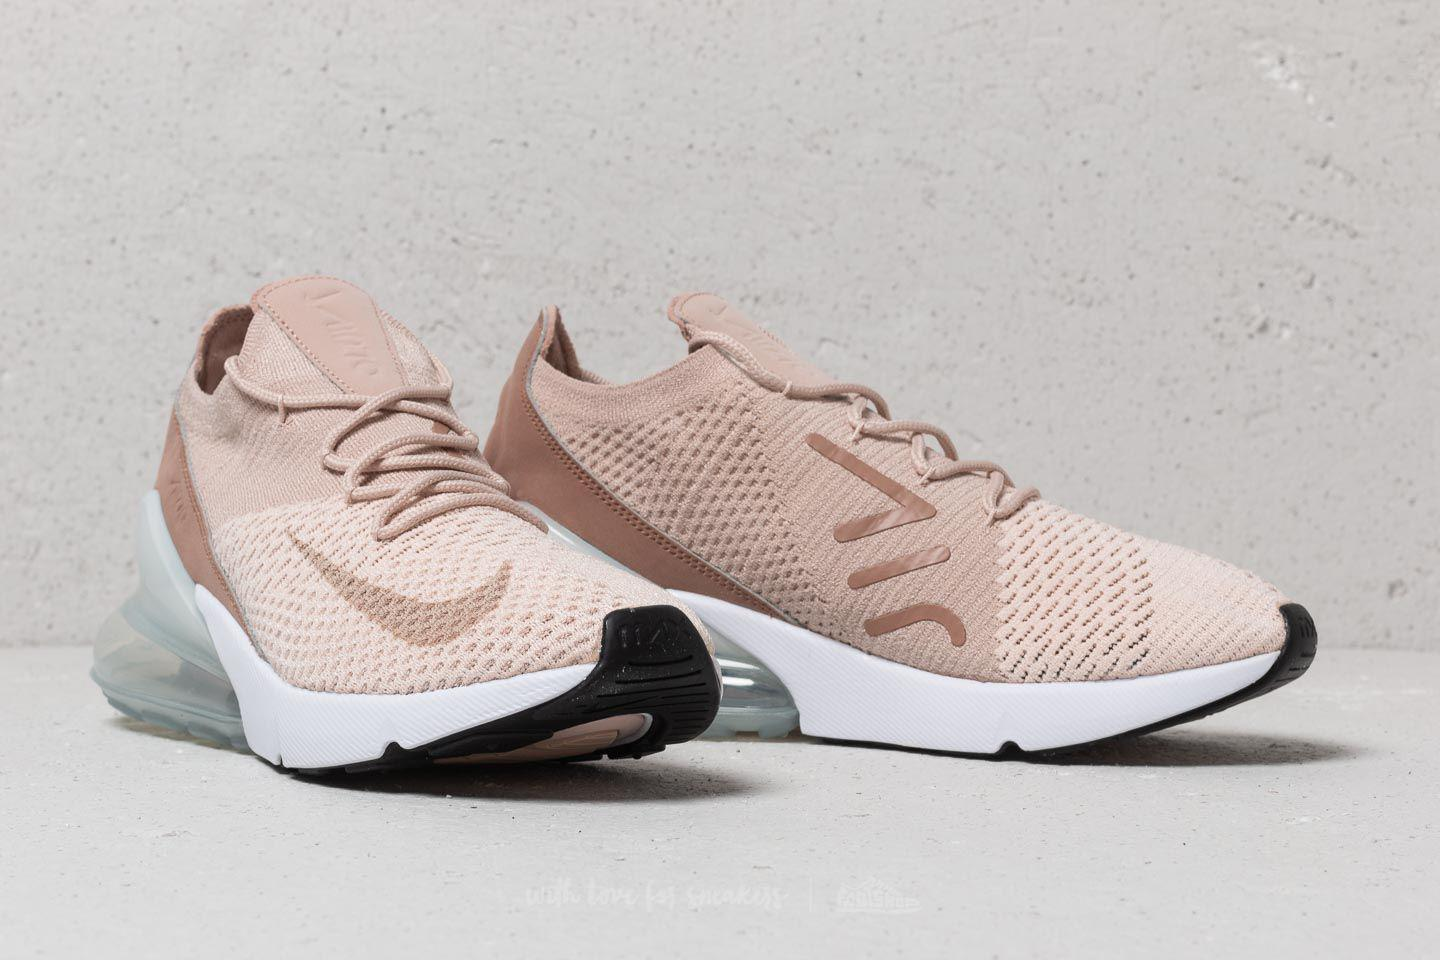 7dfeeb0cf9d1b Nike Wmns Air Max 270 Flyknit Guava Ice/ Particle Beige - Lyst